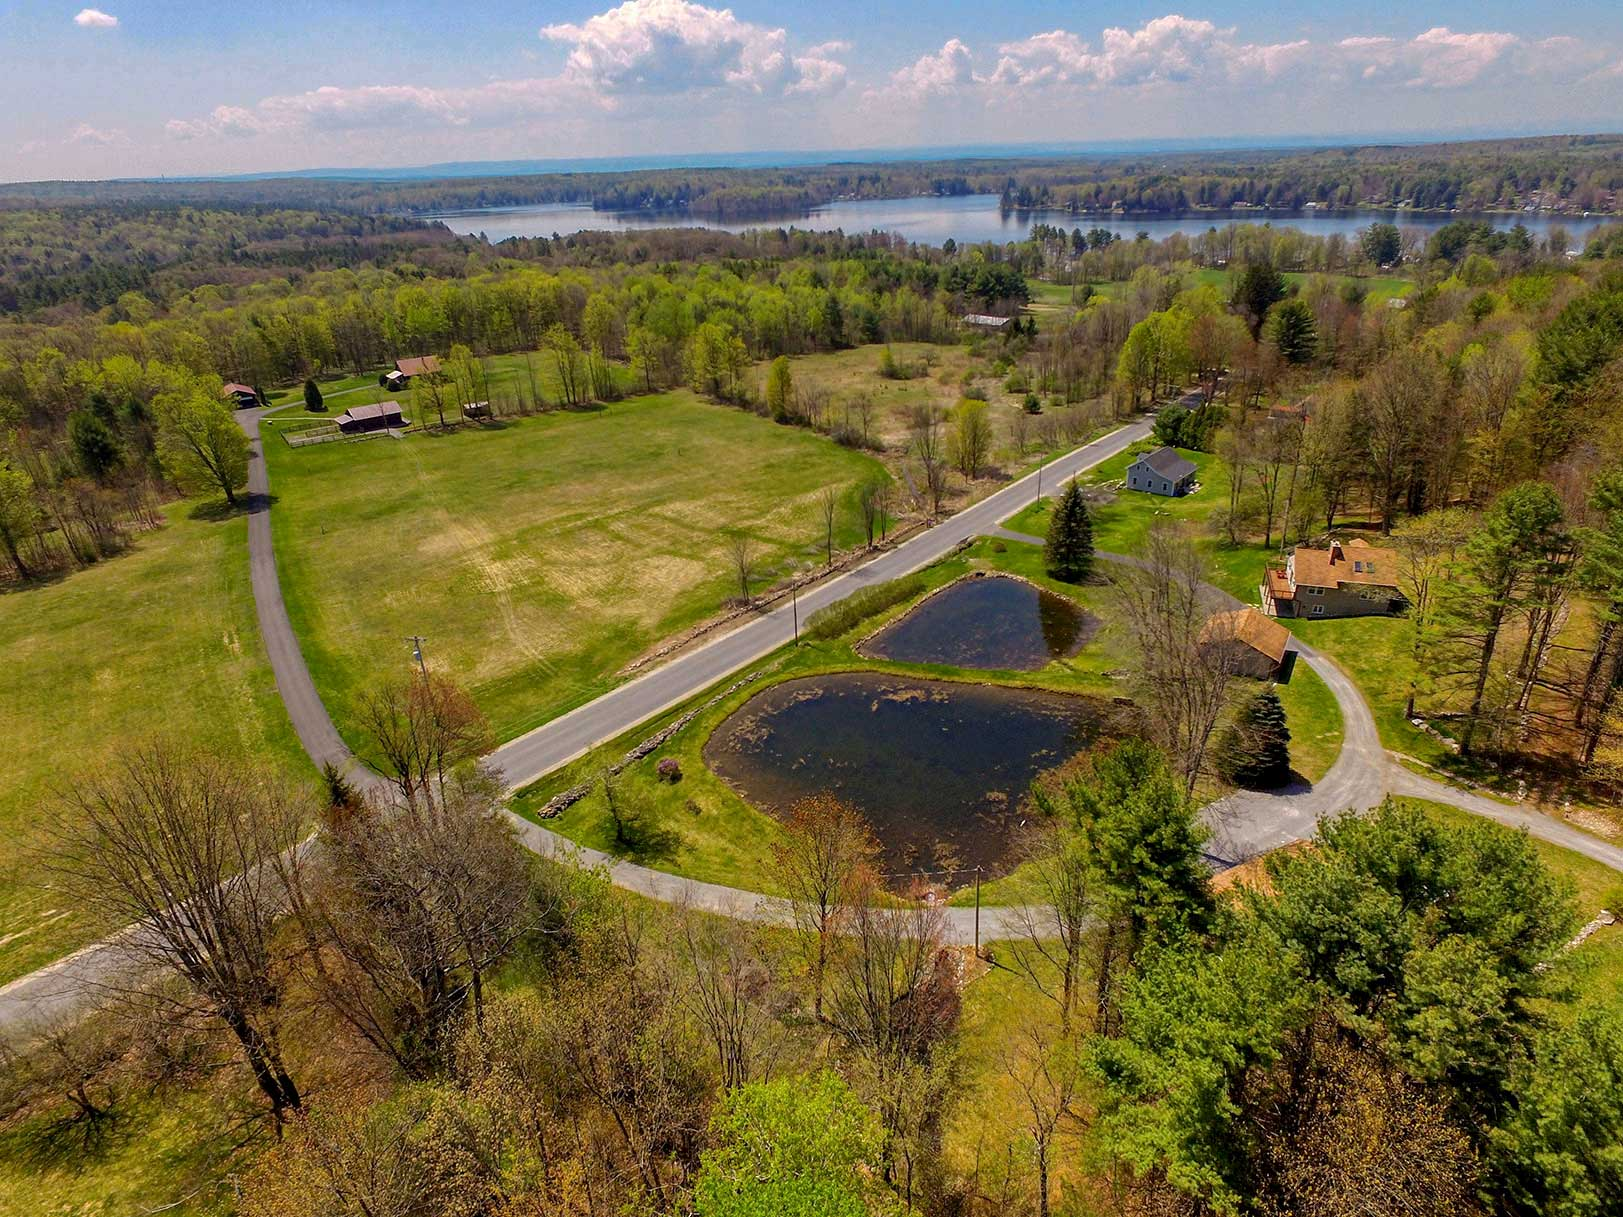 Aerial view of property with pond near Galway Lake with lake in the background.